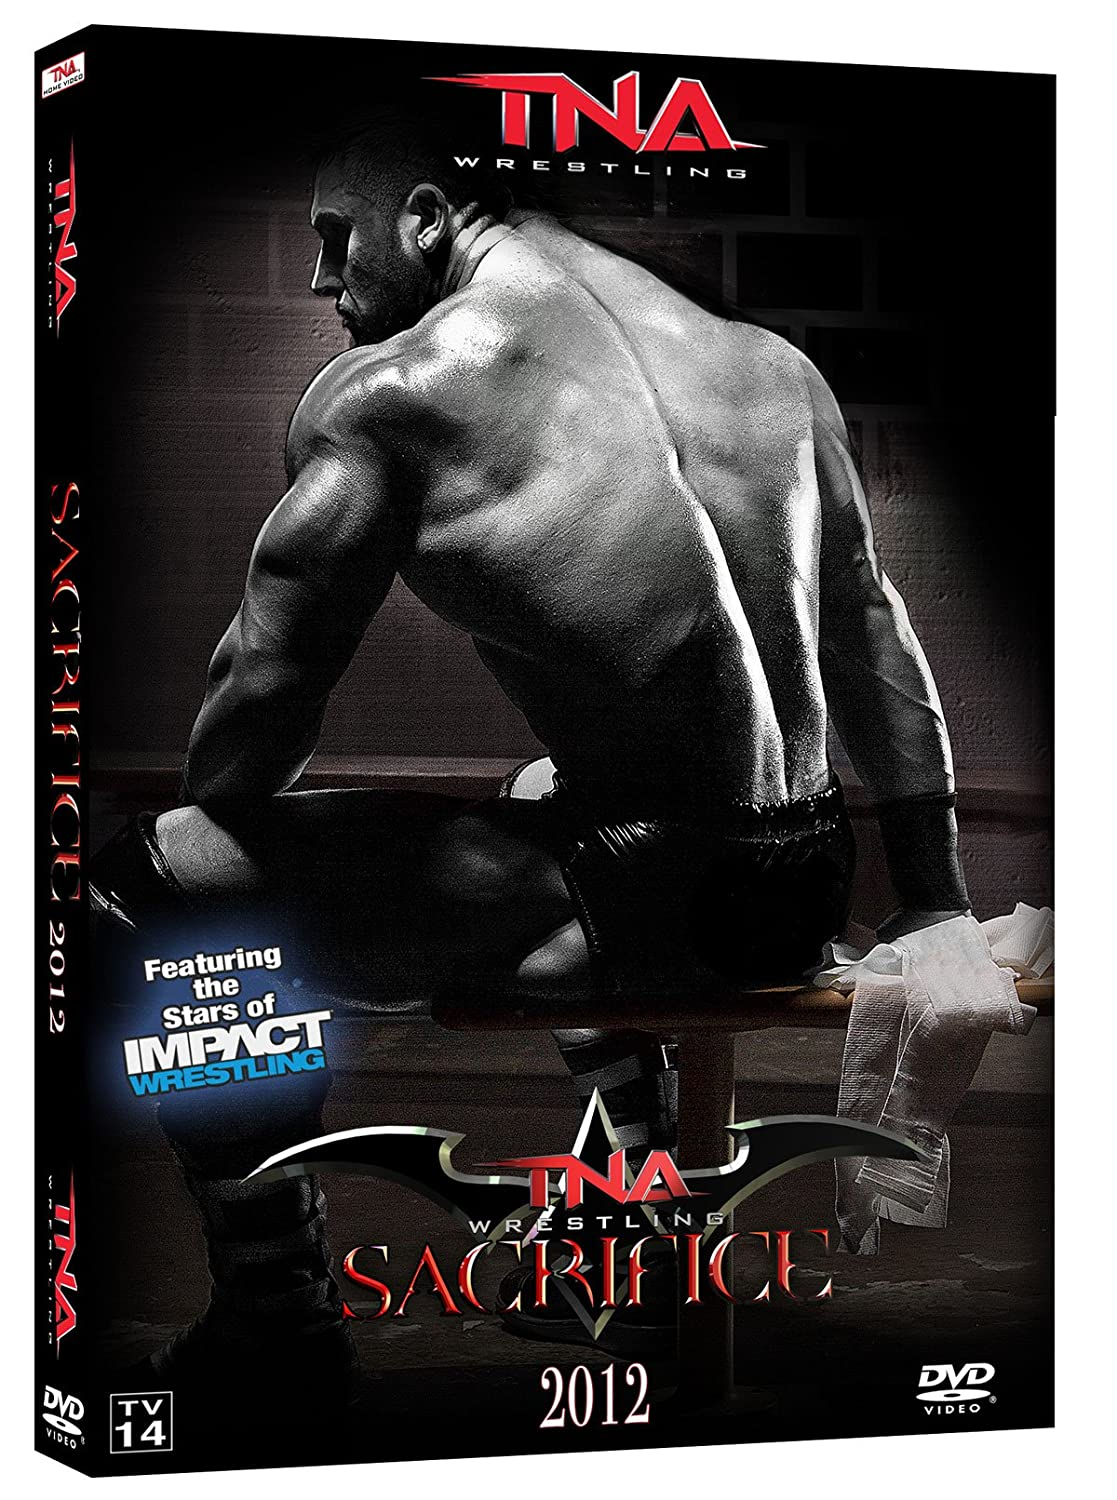 TNA Wrestling Sacrifice 2012 [DVD] [Reino Unido]: Amazon.es: Tna ...